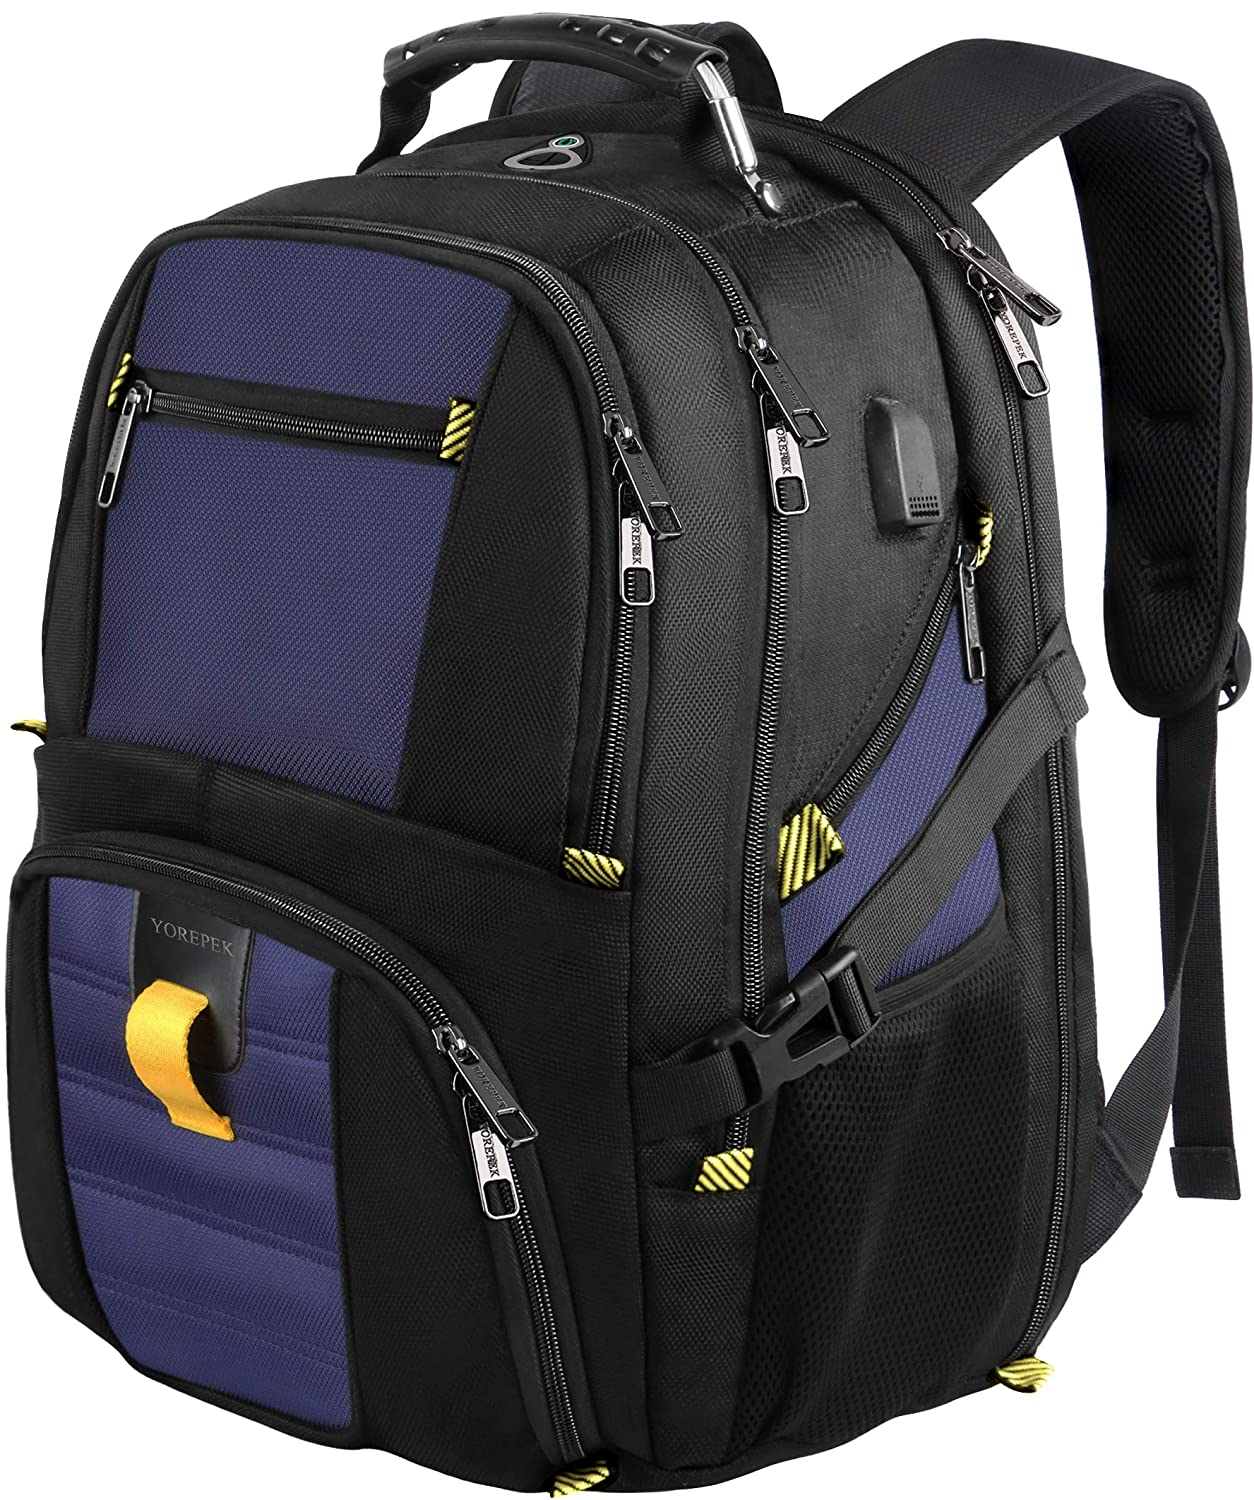 Yorepek Travel 17 Inch Laptop Backpack